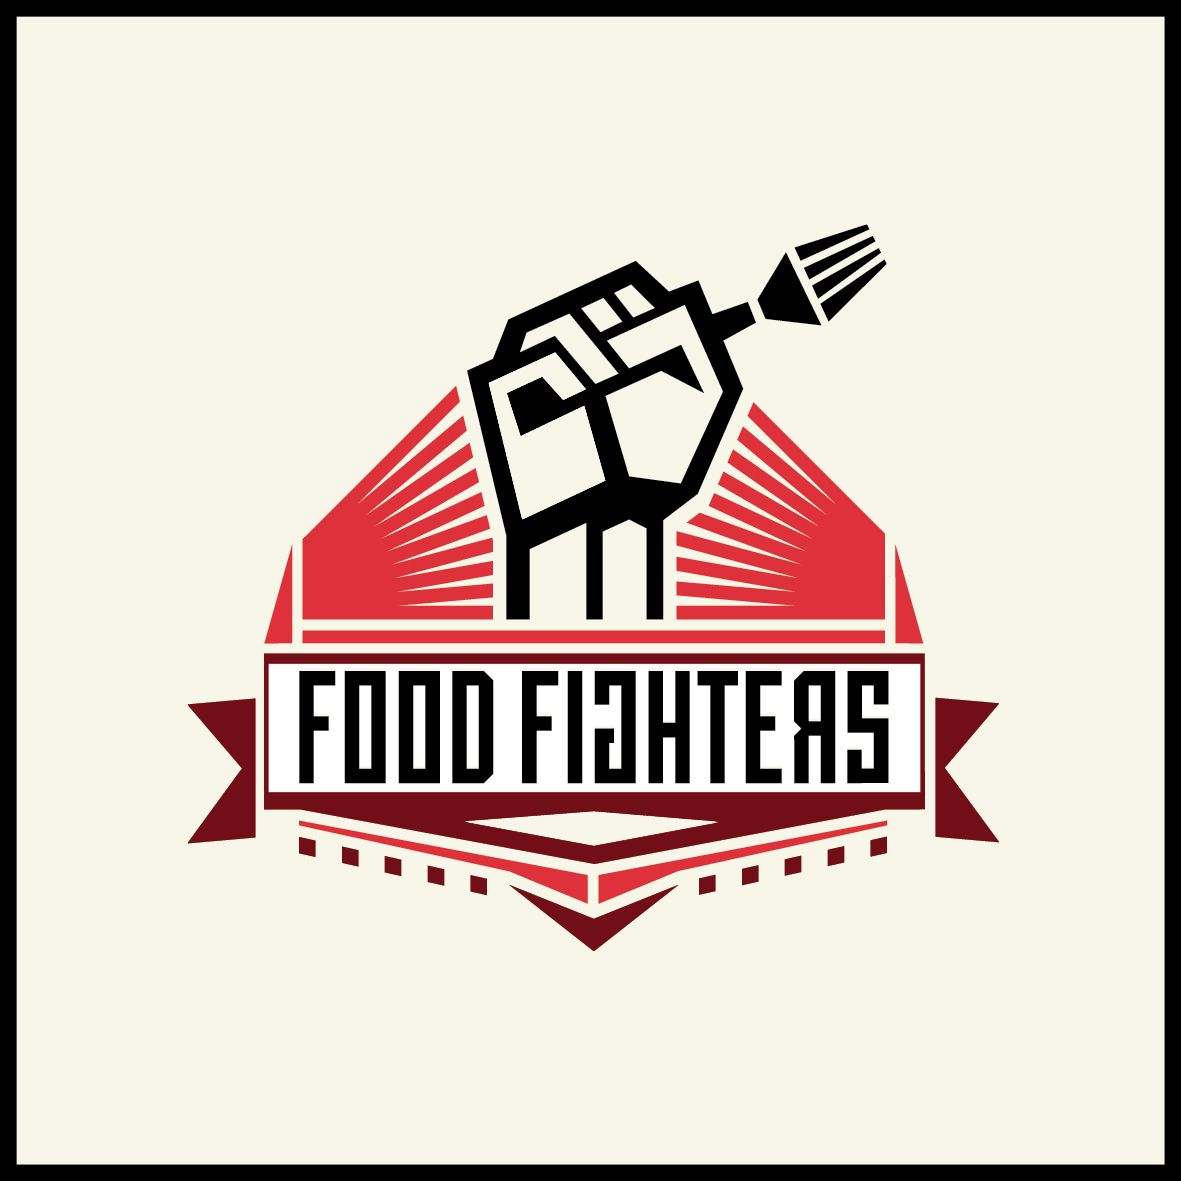 Food Fighters - Logo and Naming proposal